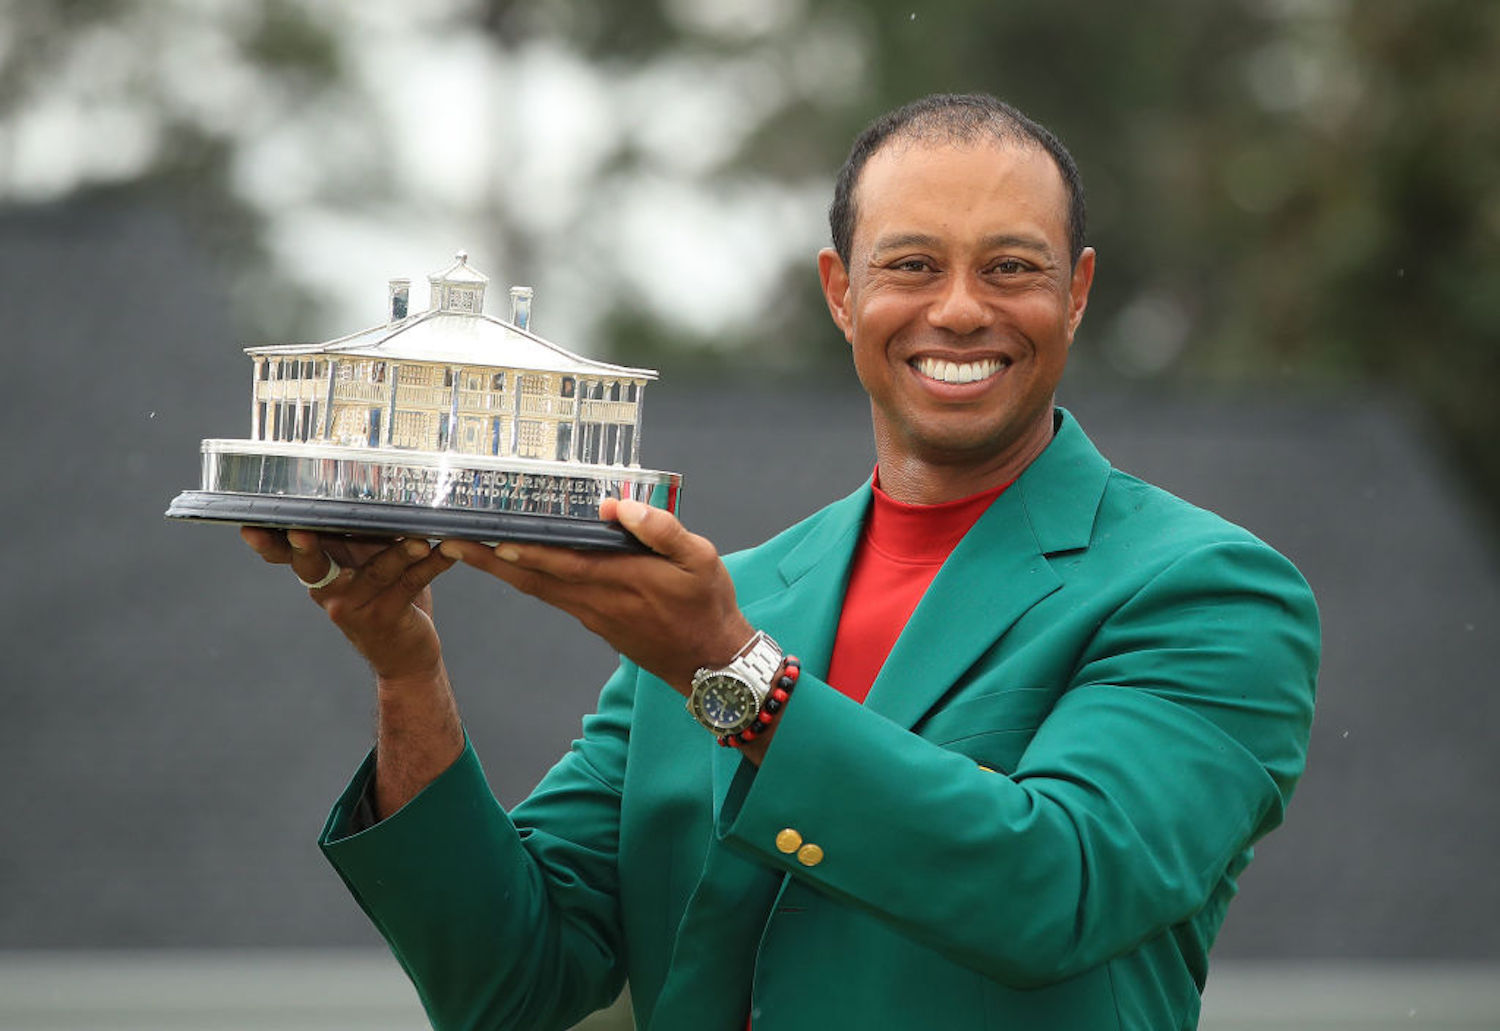 Tiger Woods may be the greatest golfer of all time, but he doesn't hold the record for most major wins. So, who does?